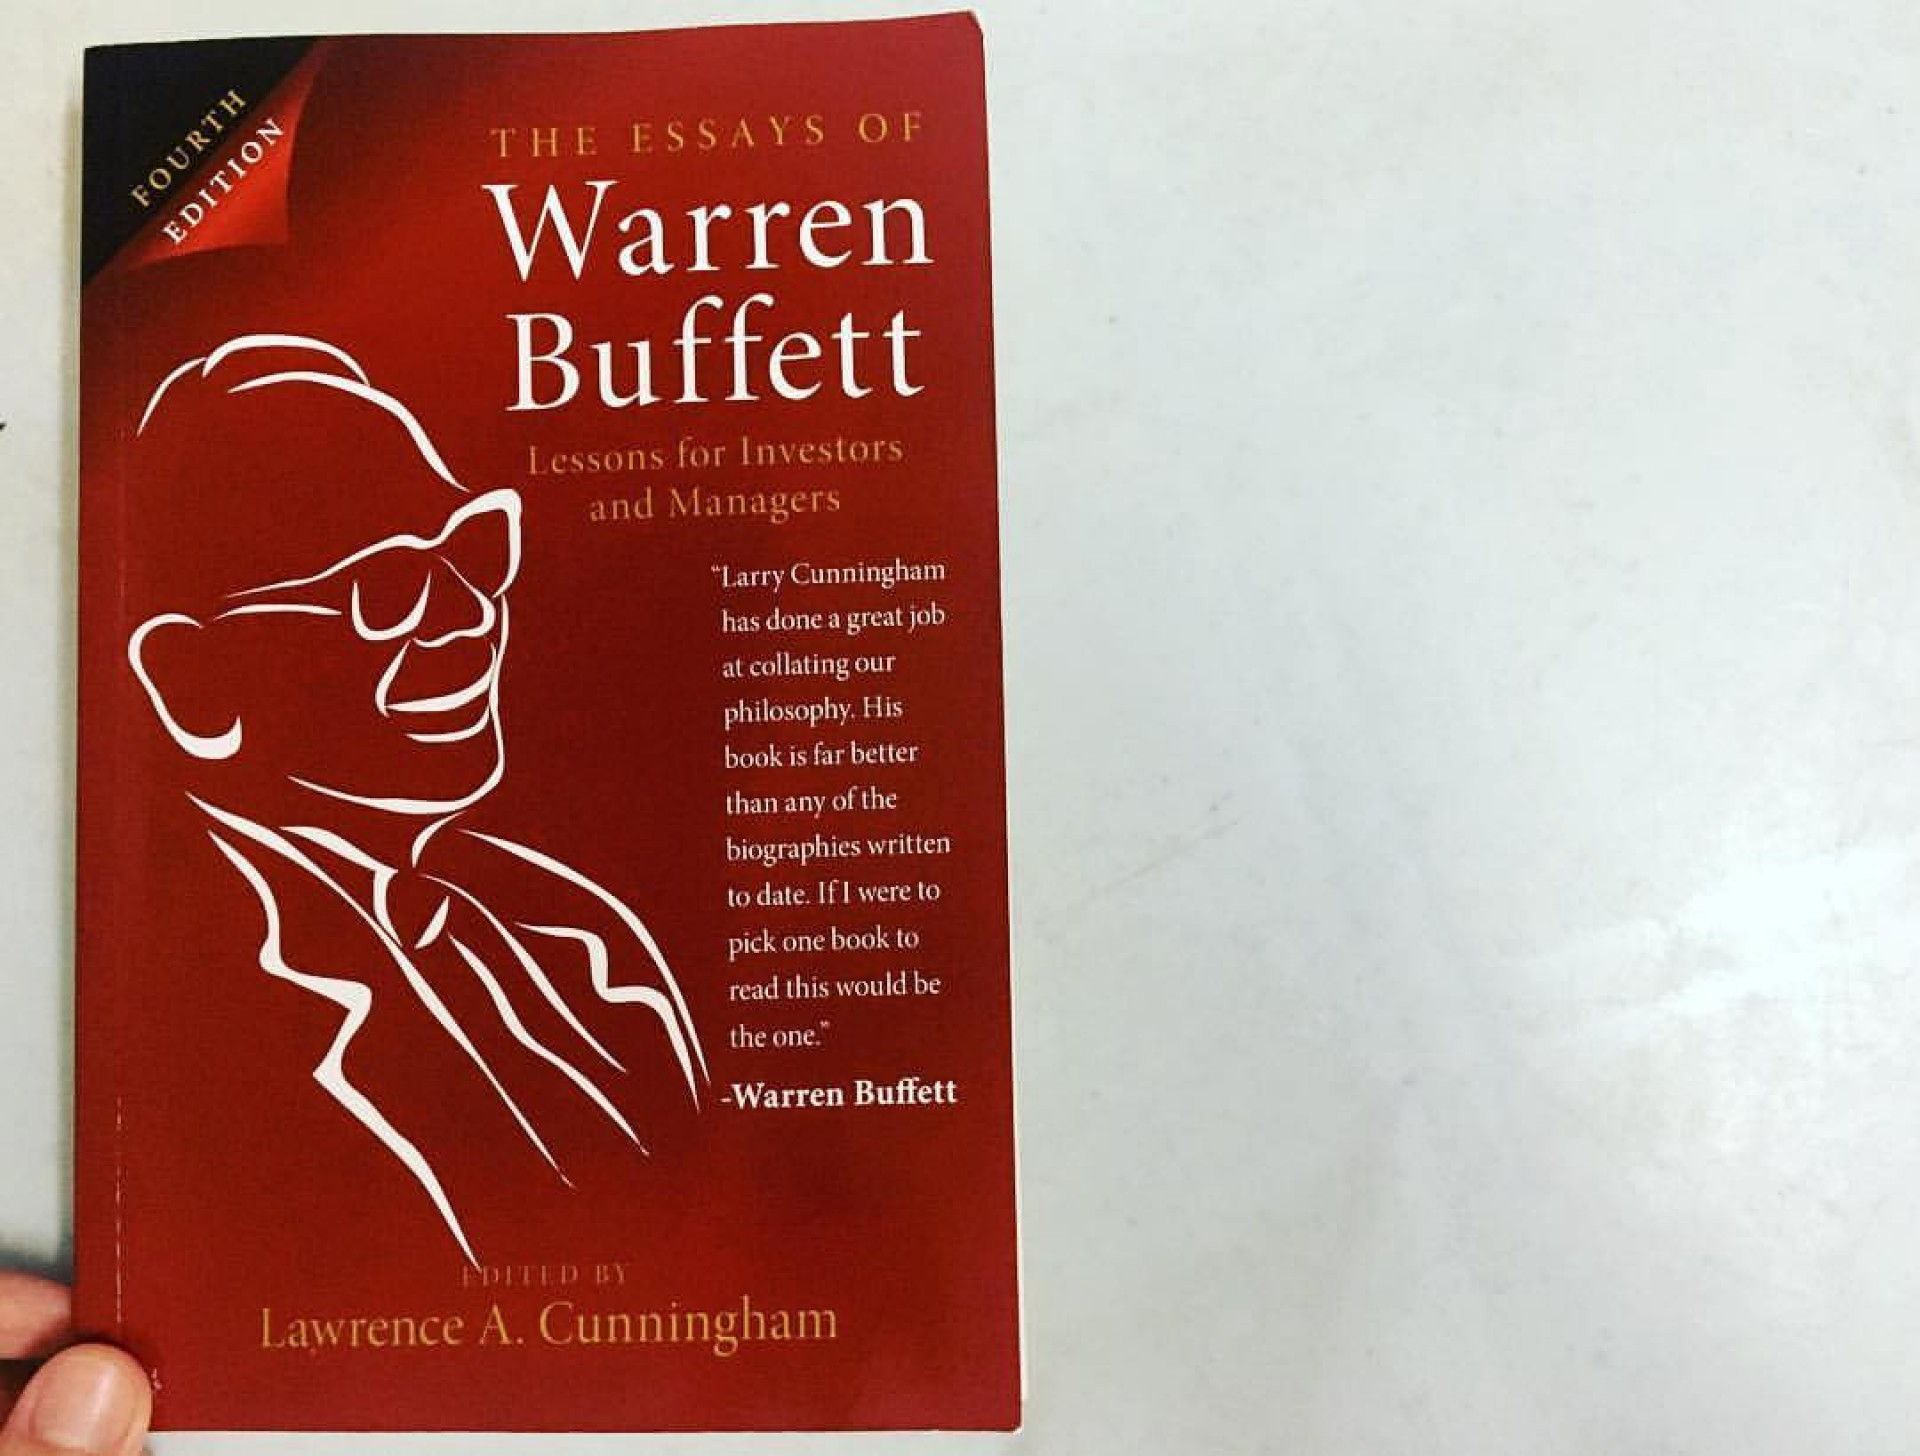 003 Essay Example Essays Of Warren Buffett Top 4th Edition The Pdf Free 1920